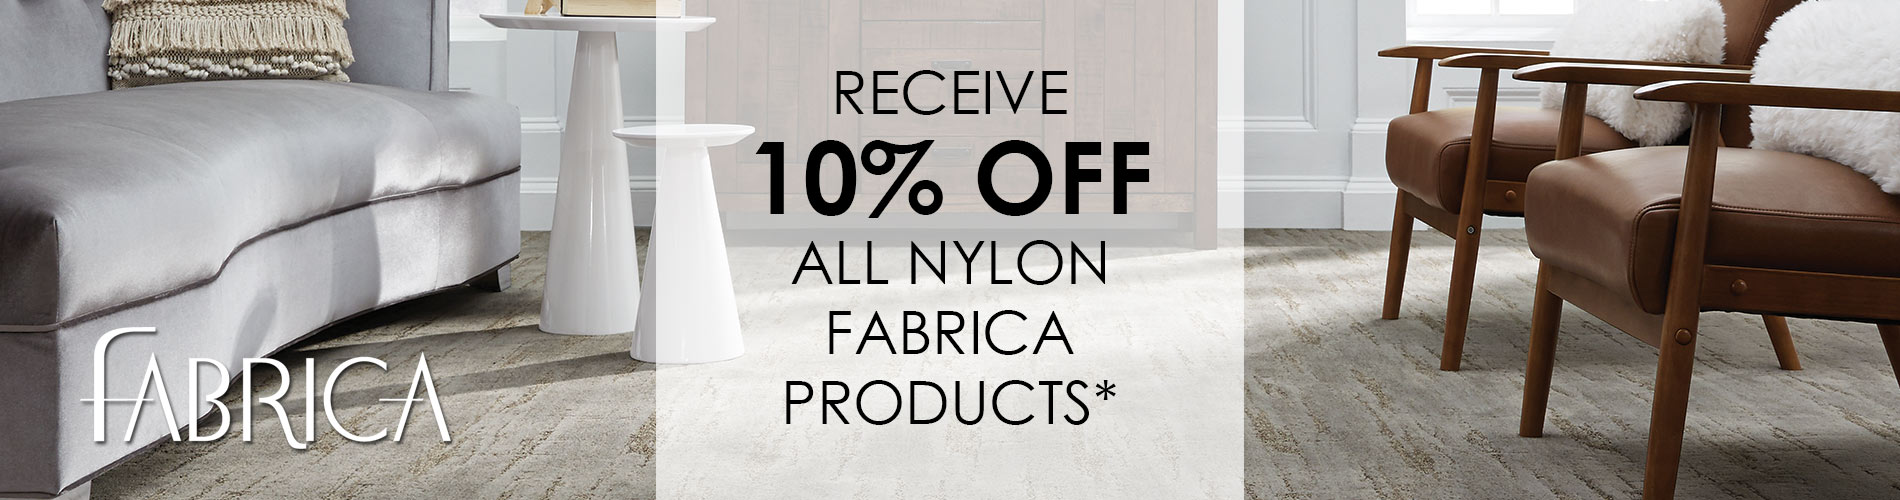 Receive 10% off all nylon fabrica products*